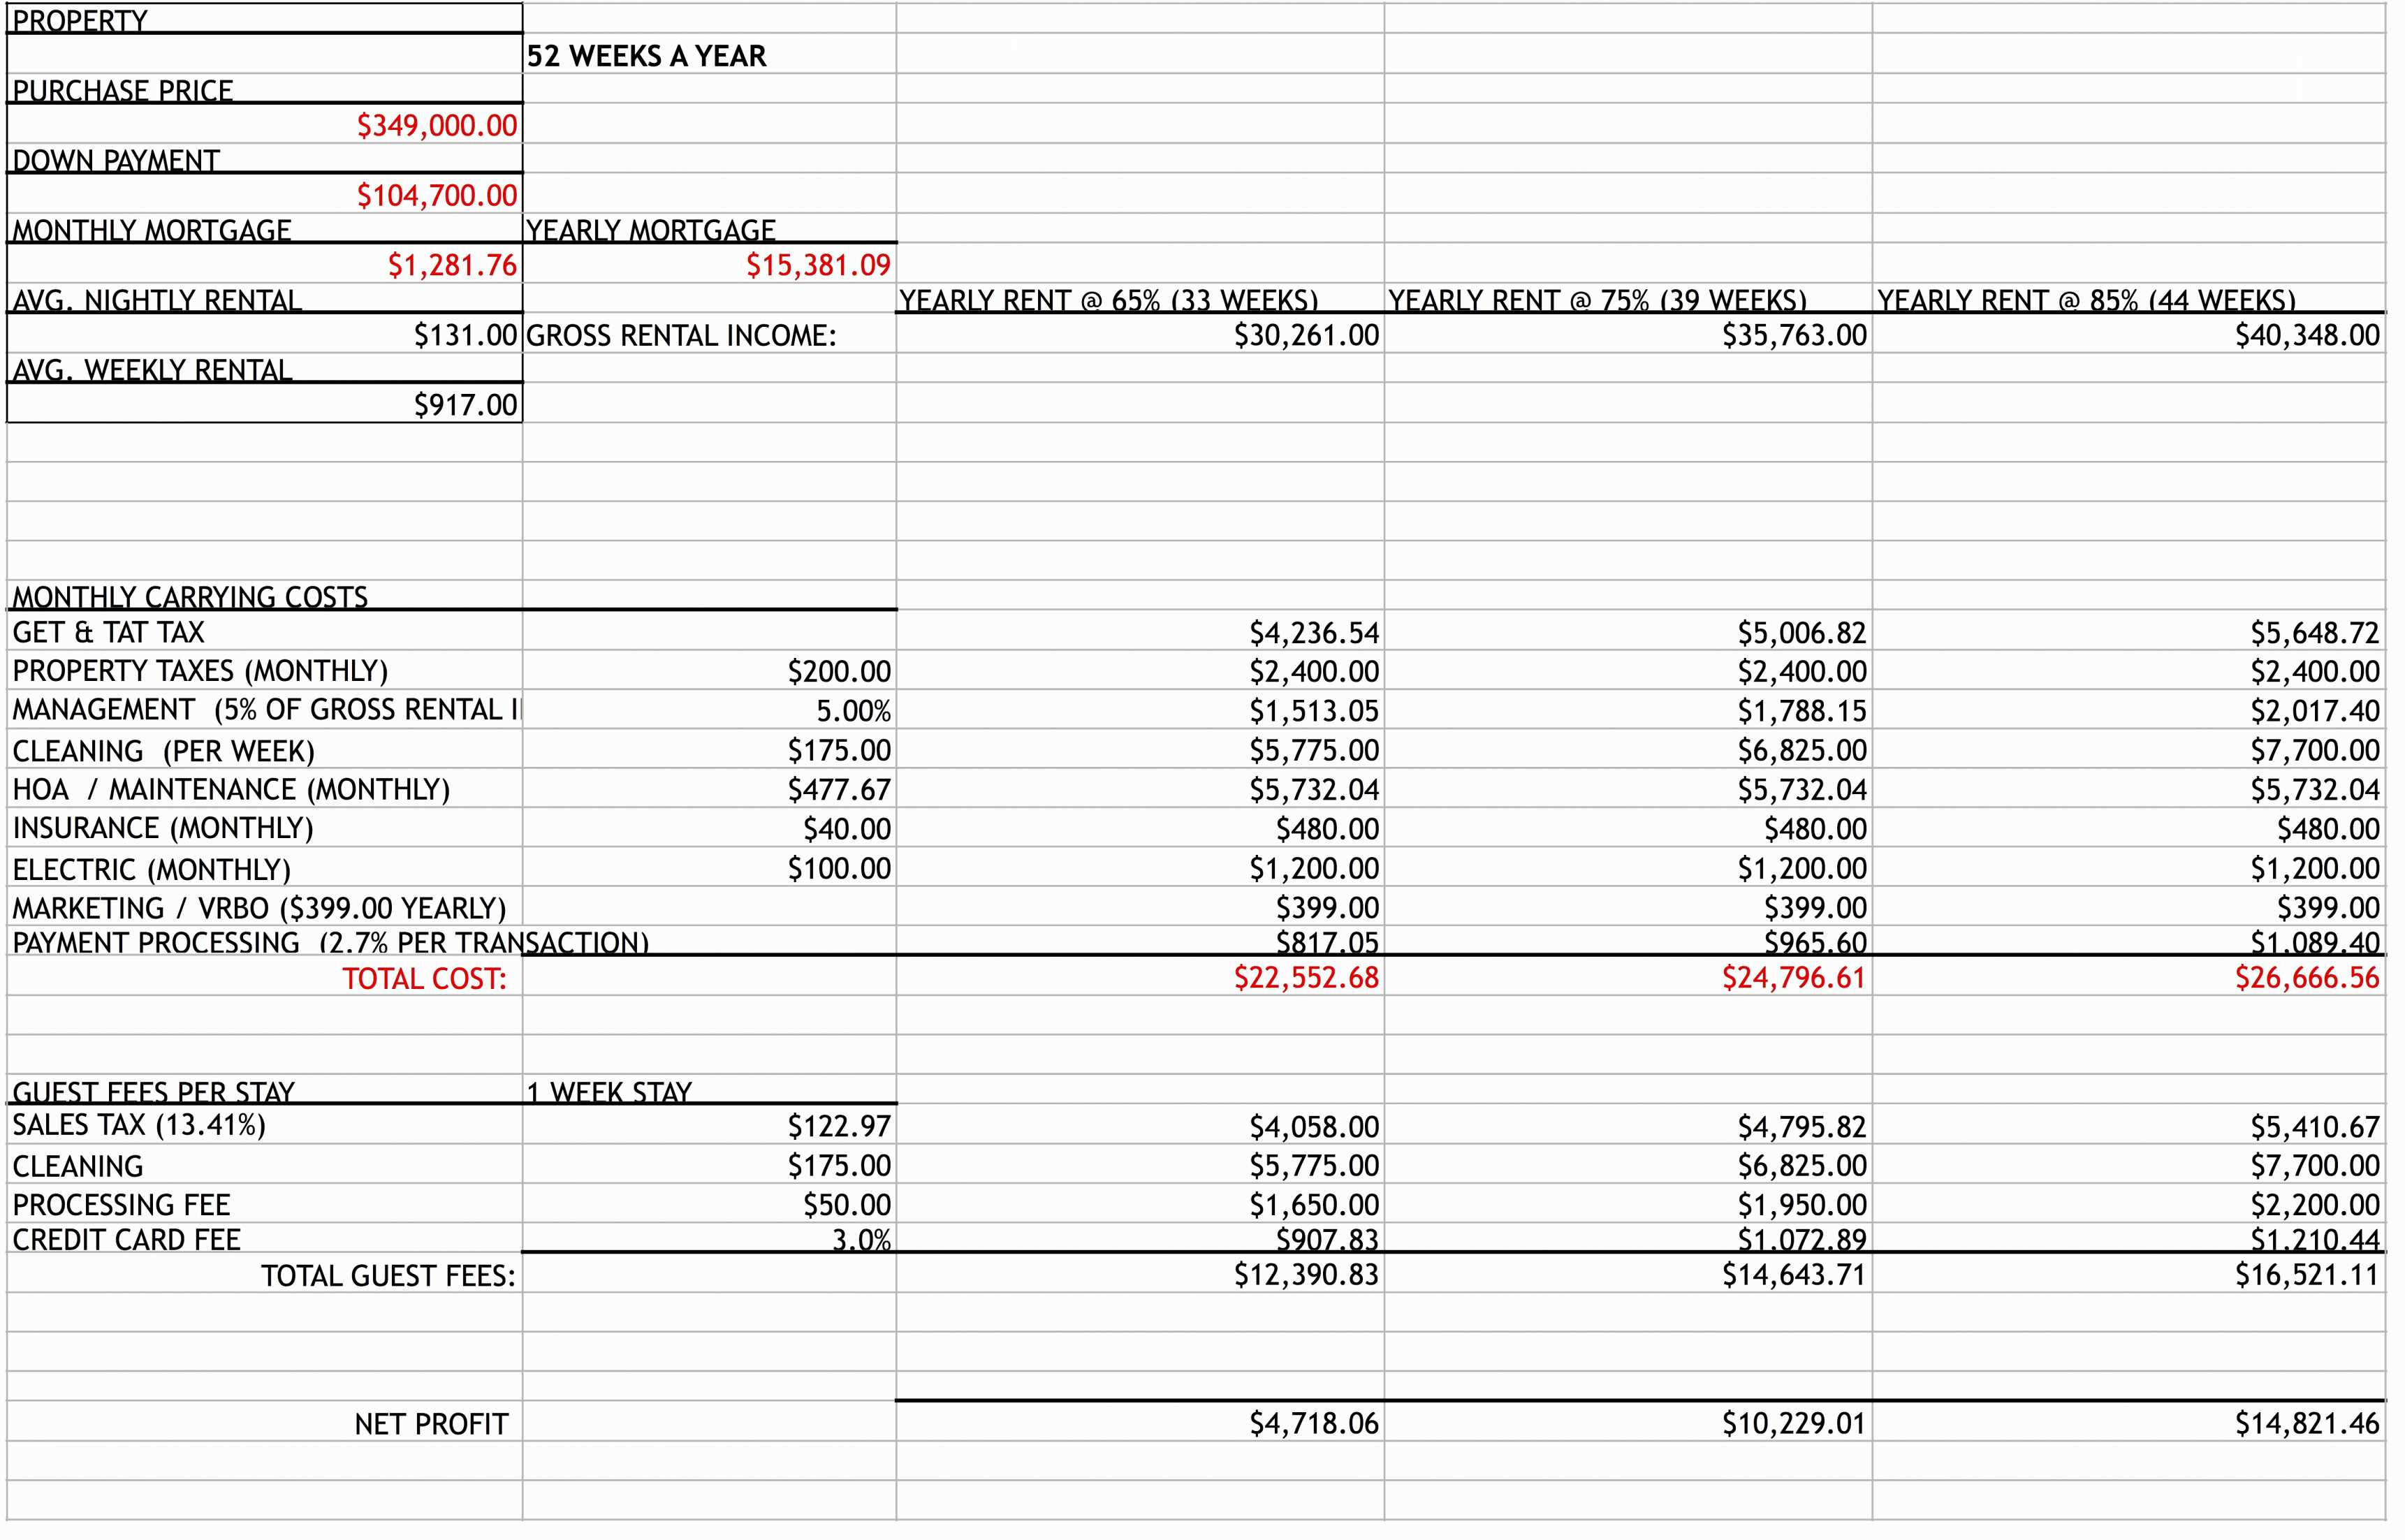 marketing roi spreadsheet investment roi spreadsheet roi spreadsheet example roi spreadsheet roi analysis spreadsheet roi spreadsheet xls Roi Spreadsheet Template Real Estate